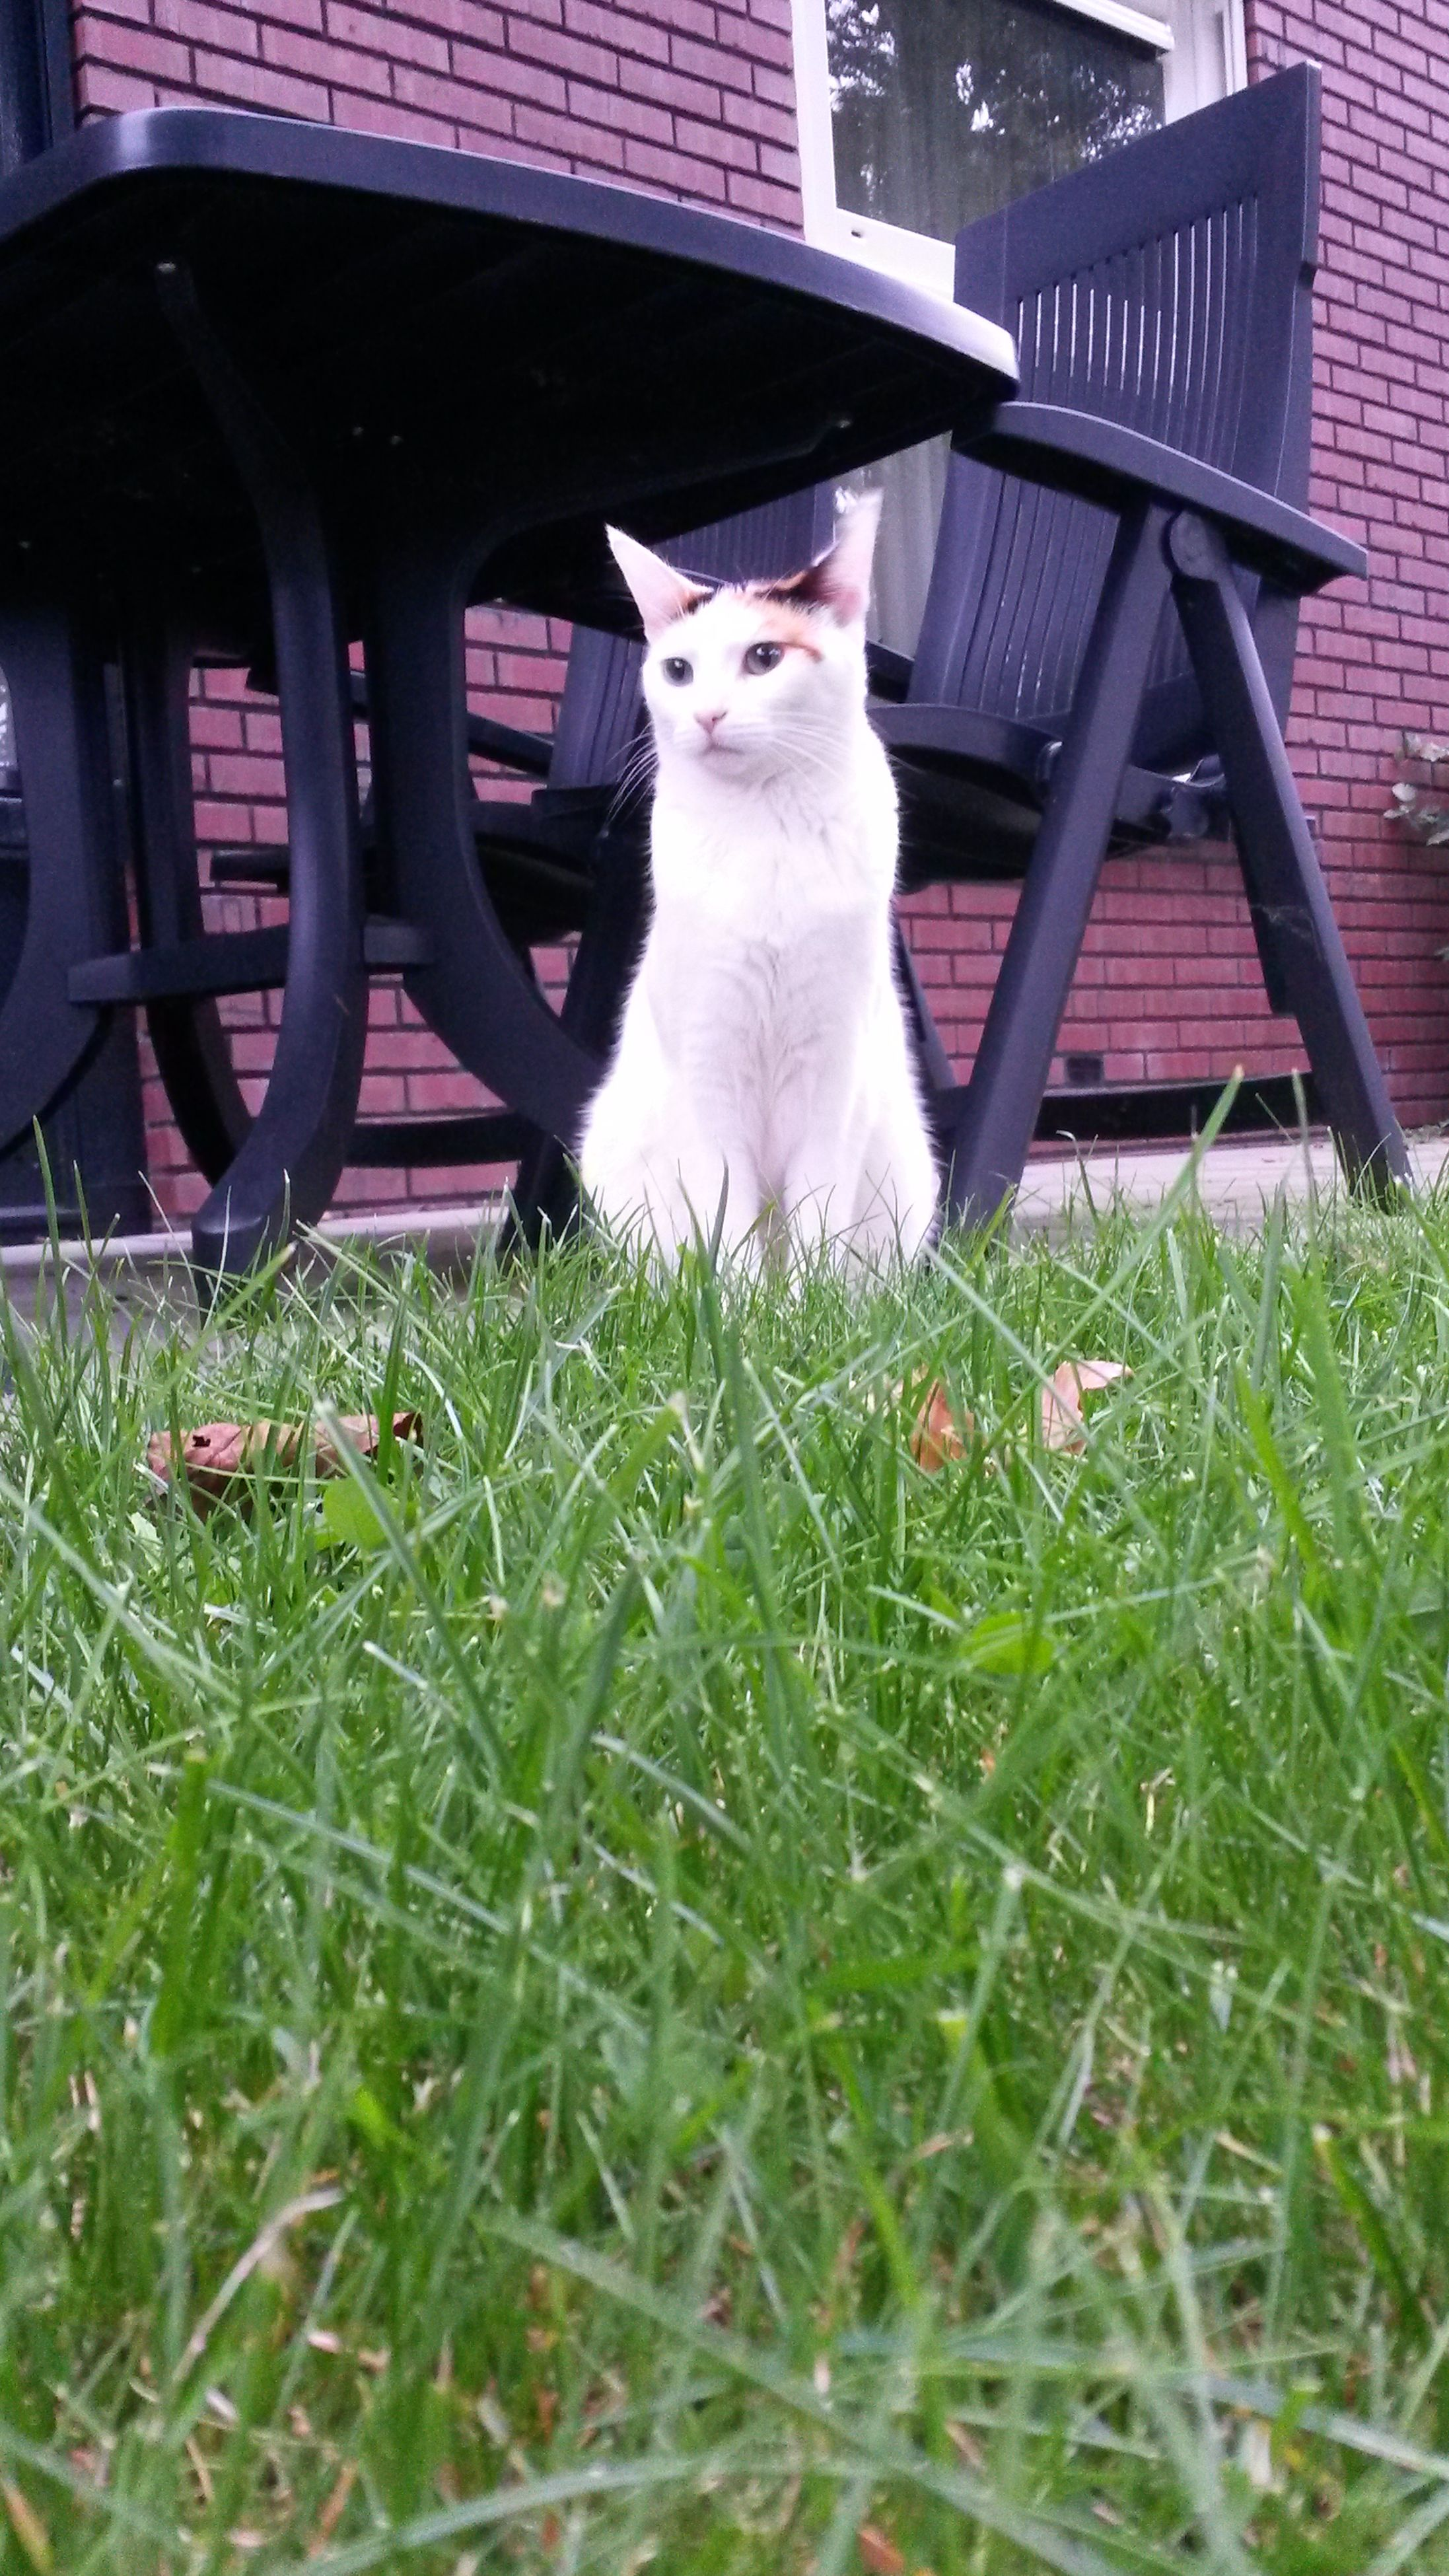 domestic animals, pets, animal themes, mammal, one animal, domestic cat, cat, feline, building exterior, grass, house, relaxation, front or back yard, built structure, architecture, looking at camera, no people, two animals, full length, plant